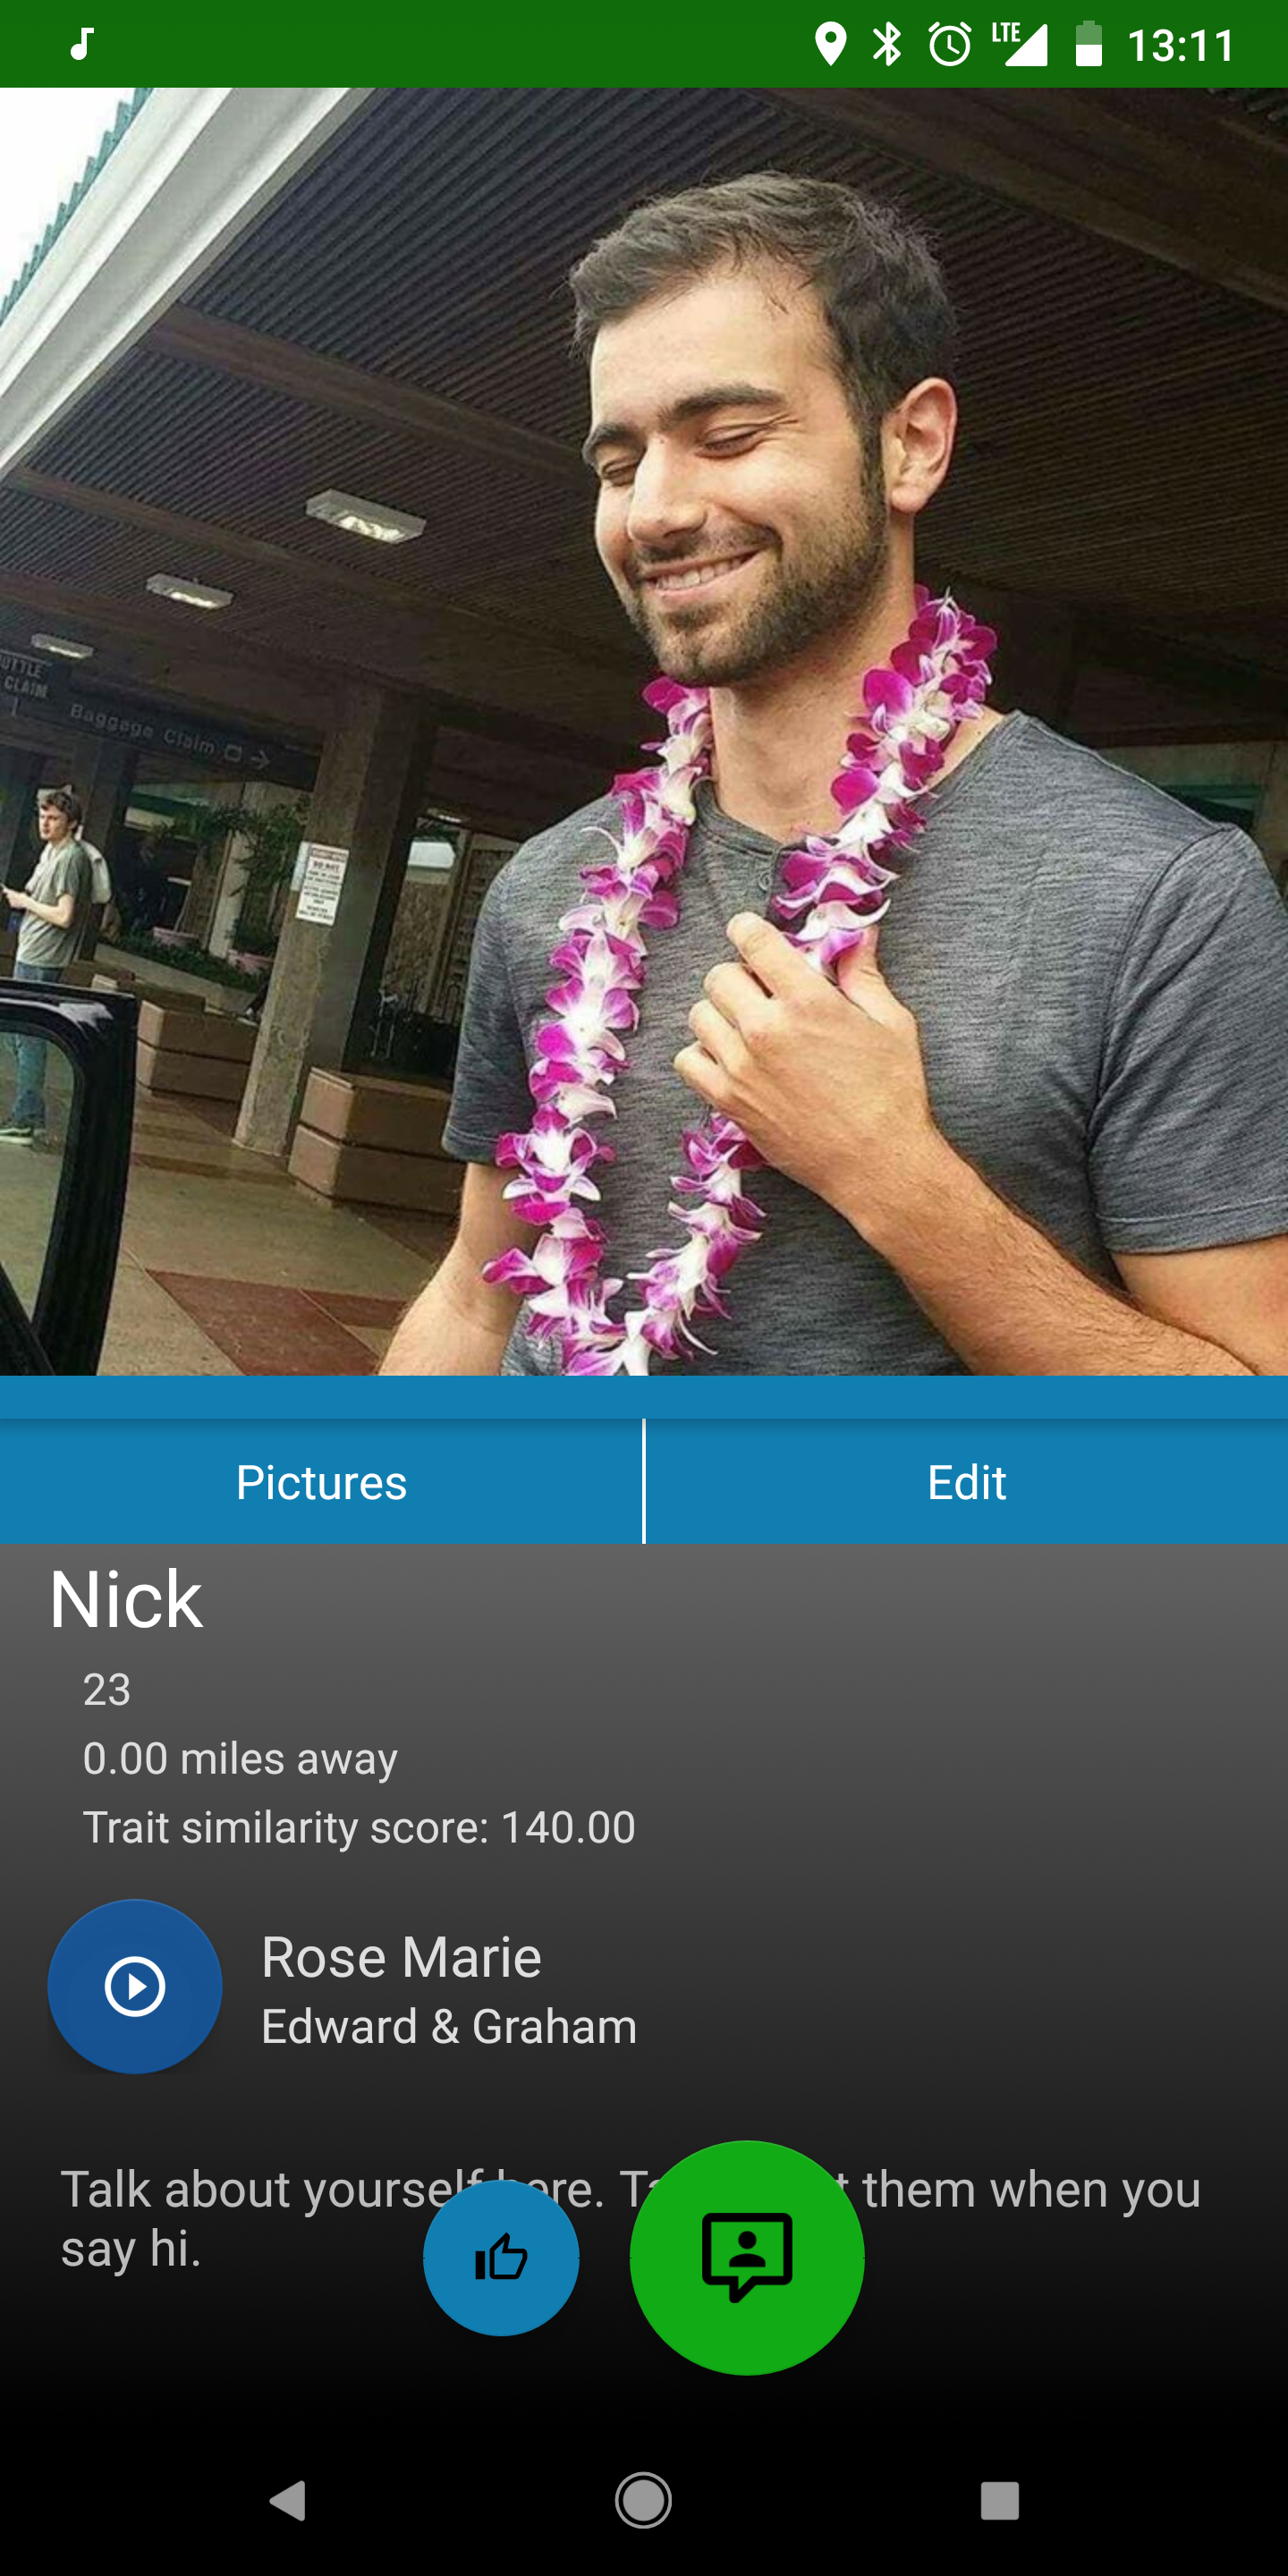 How Nick's profile appears on his app, Strum 86.